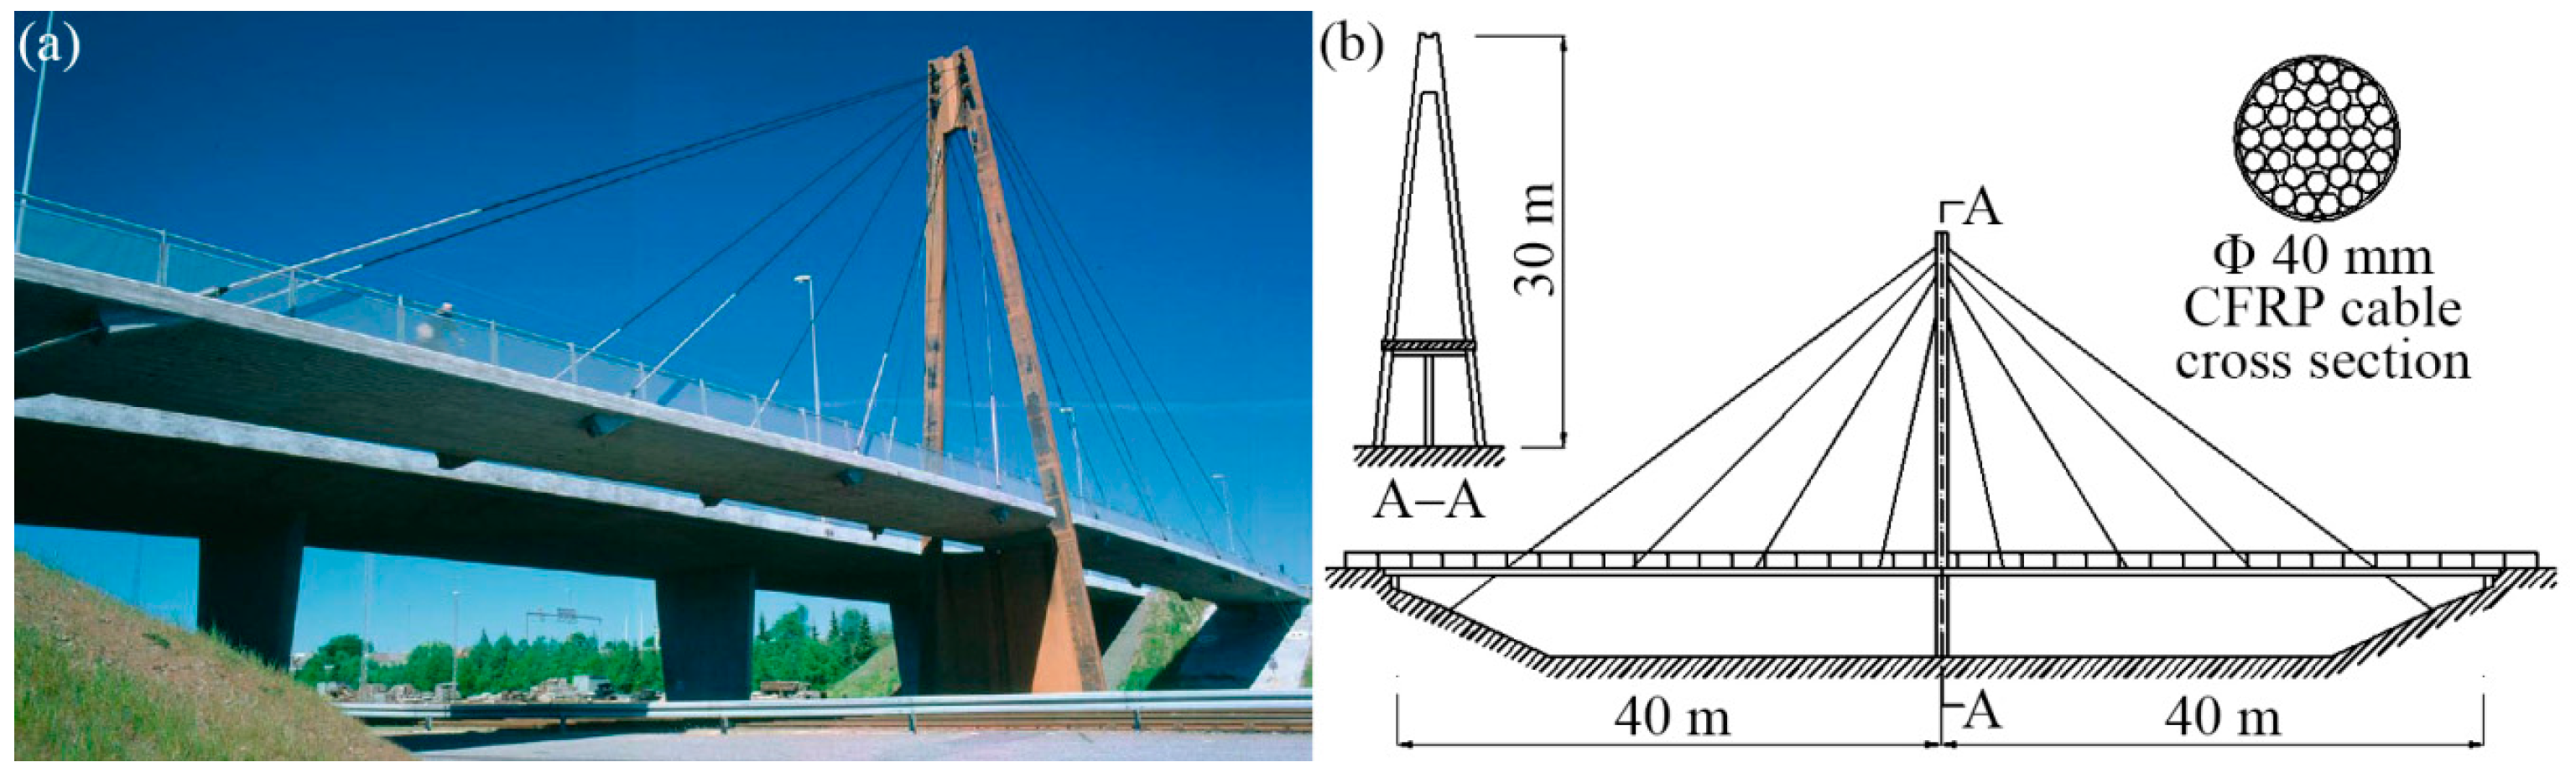 Polymers Free Full Text Carbon Fiber Reinforced Polymer For Narrows Bridge Again Name The Parts Of In This Diagram 07 01501 G013 1024